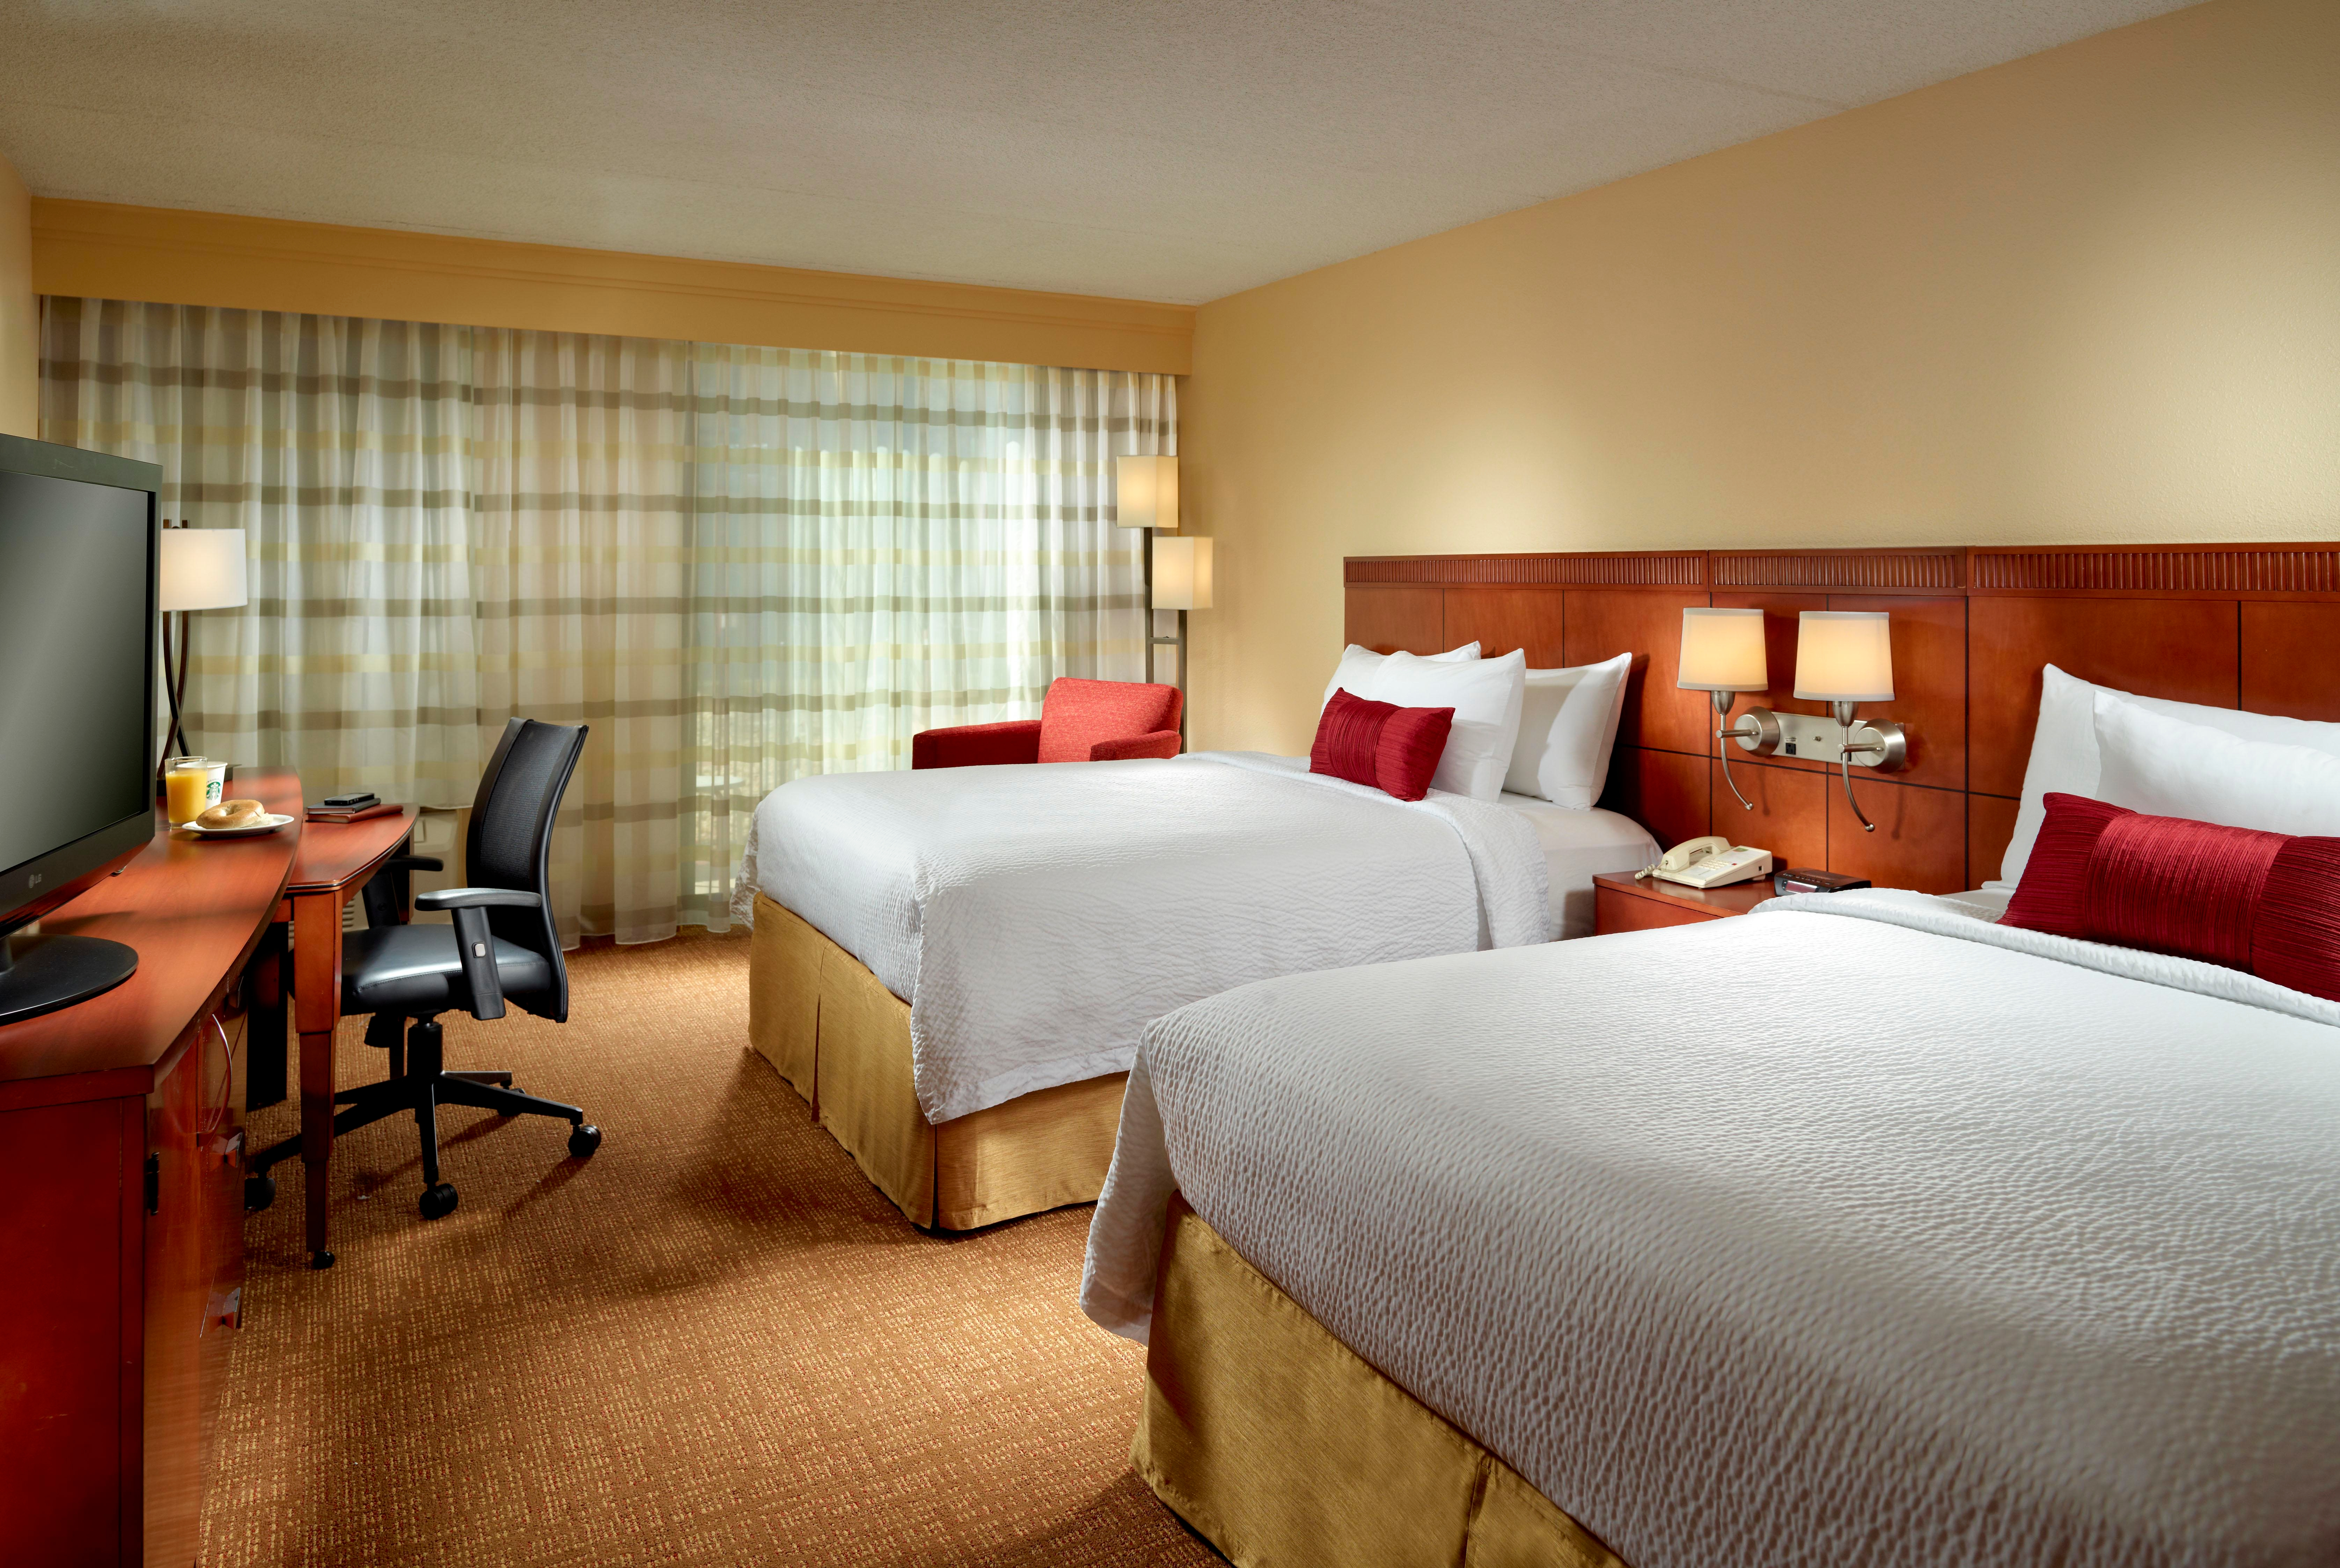 Courtyard by Marriott Columbus image 7